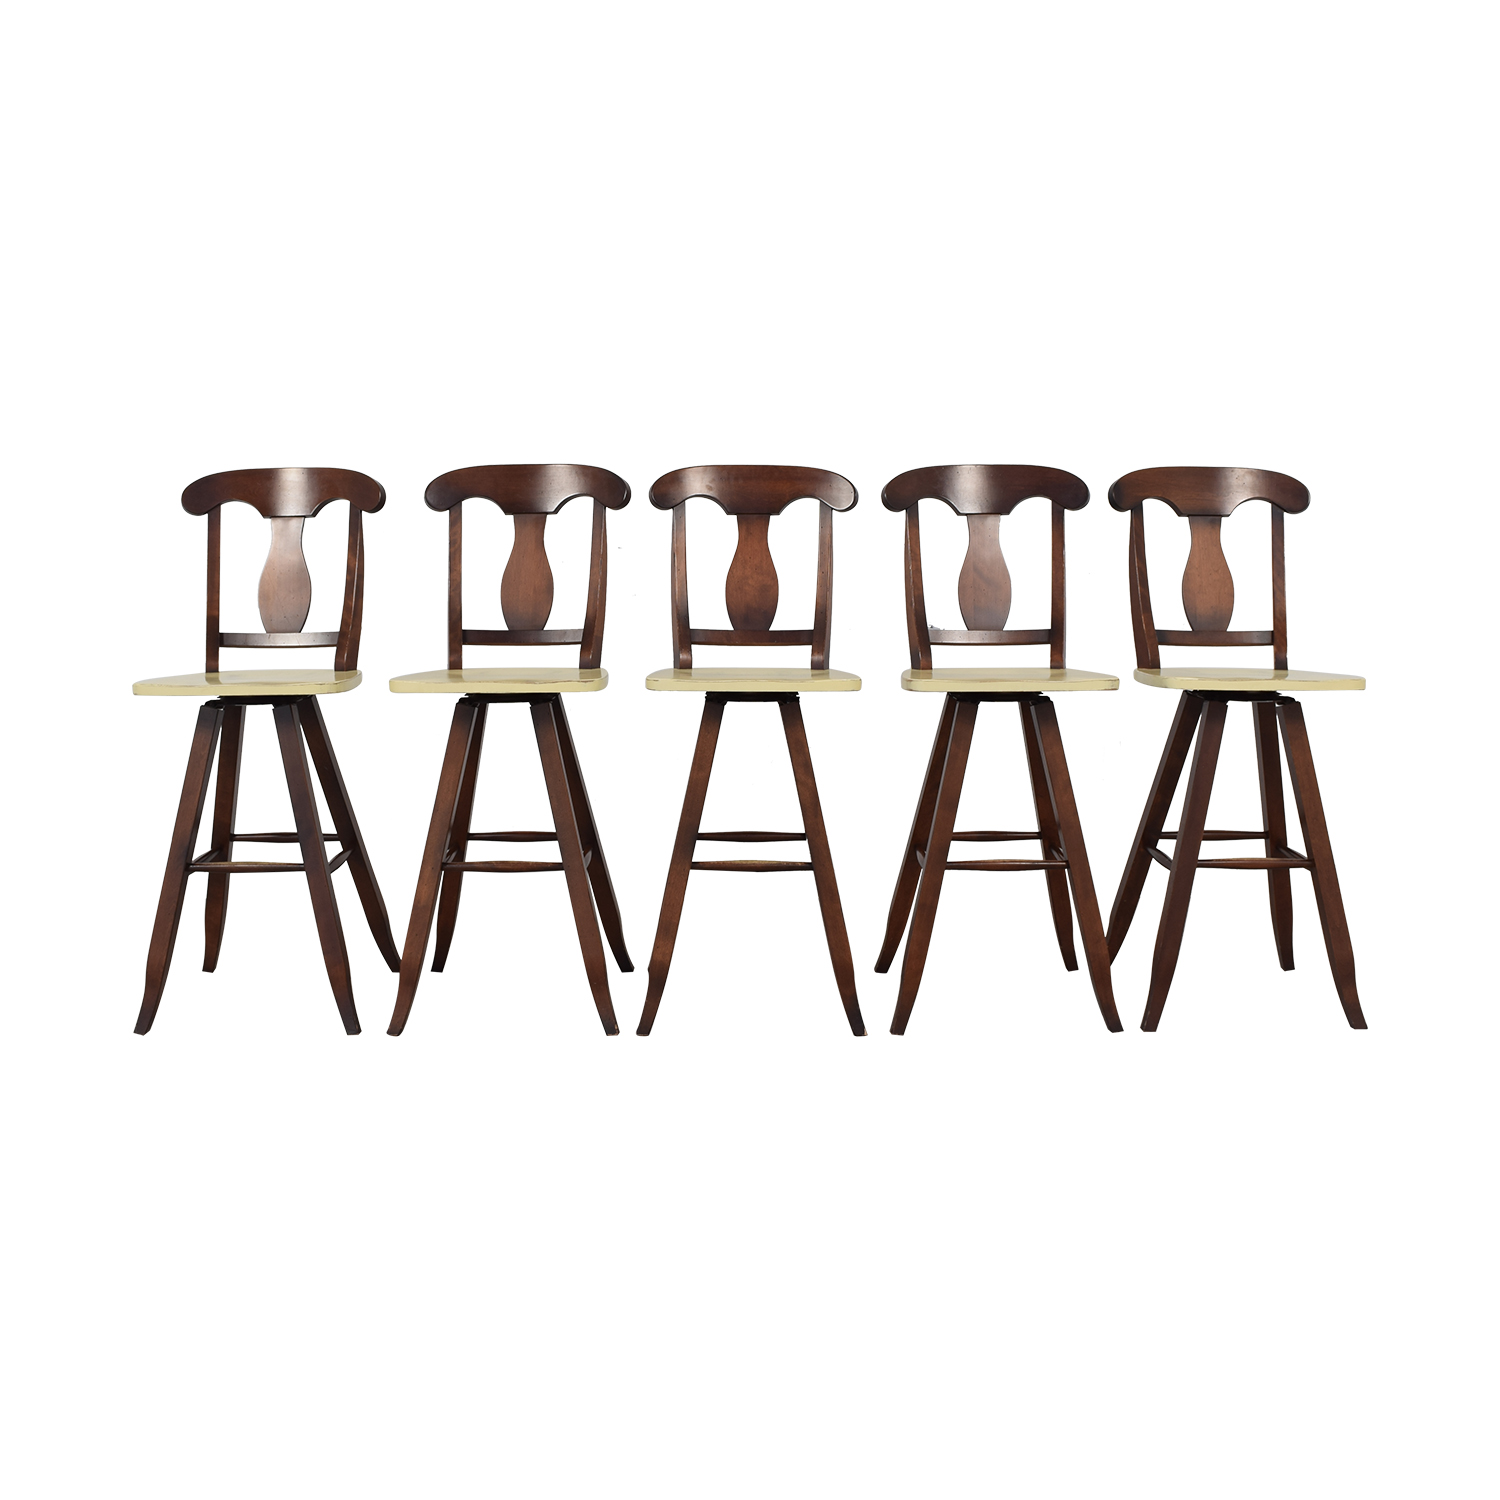 Traditional Swivel Stools price